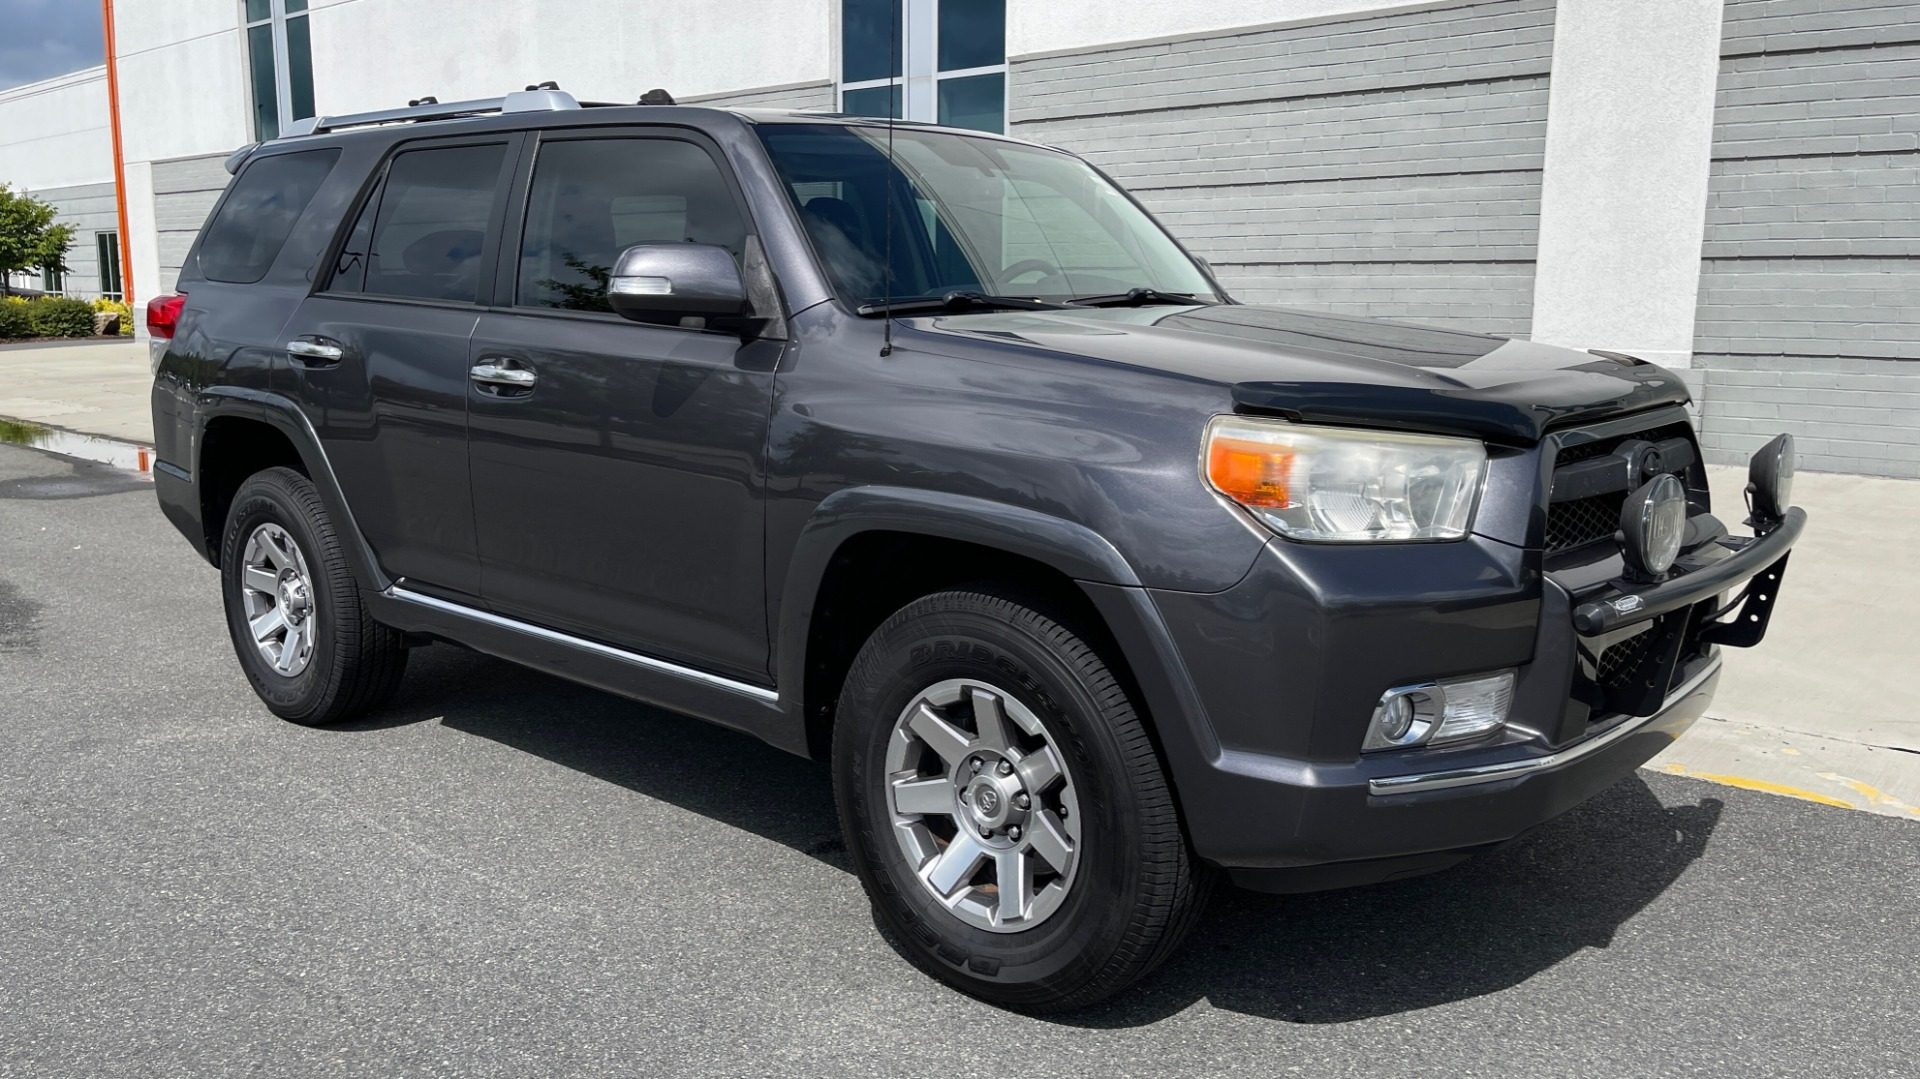 Used 2011 Toyota 4RUNNER SR5 4X4 V6 / 5-SPD AUTO / SUNROOF / POWER FRONT SEATS for sale $19,999 at Formula Imports in Charlotte NC 28227 22